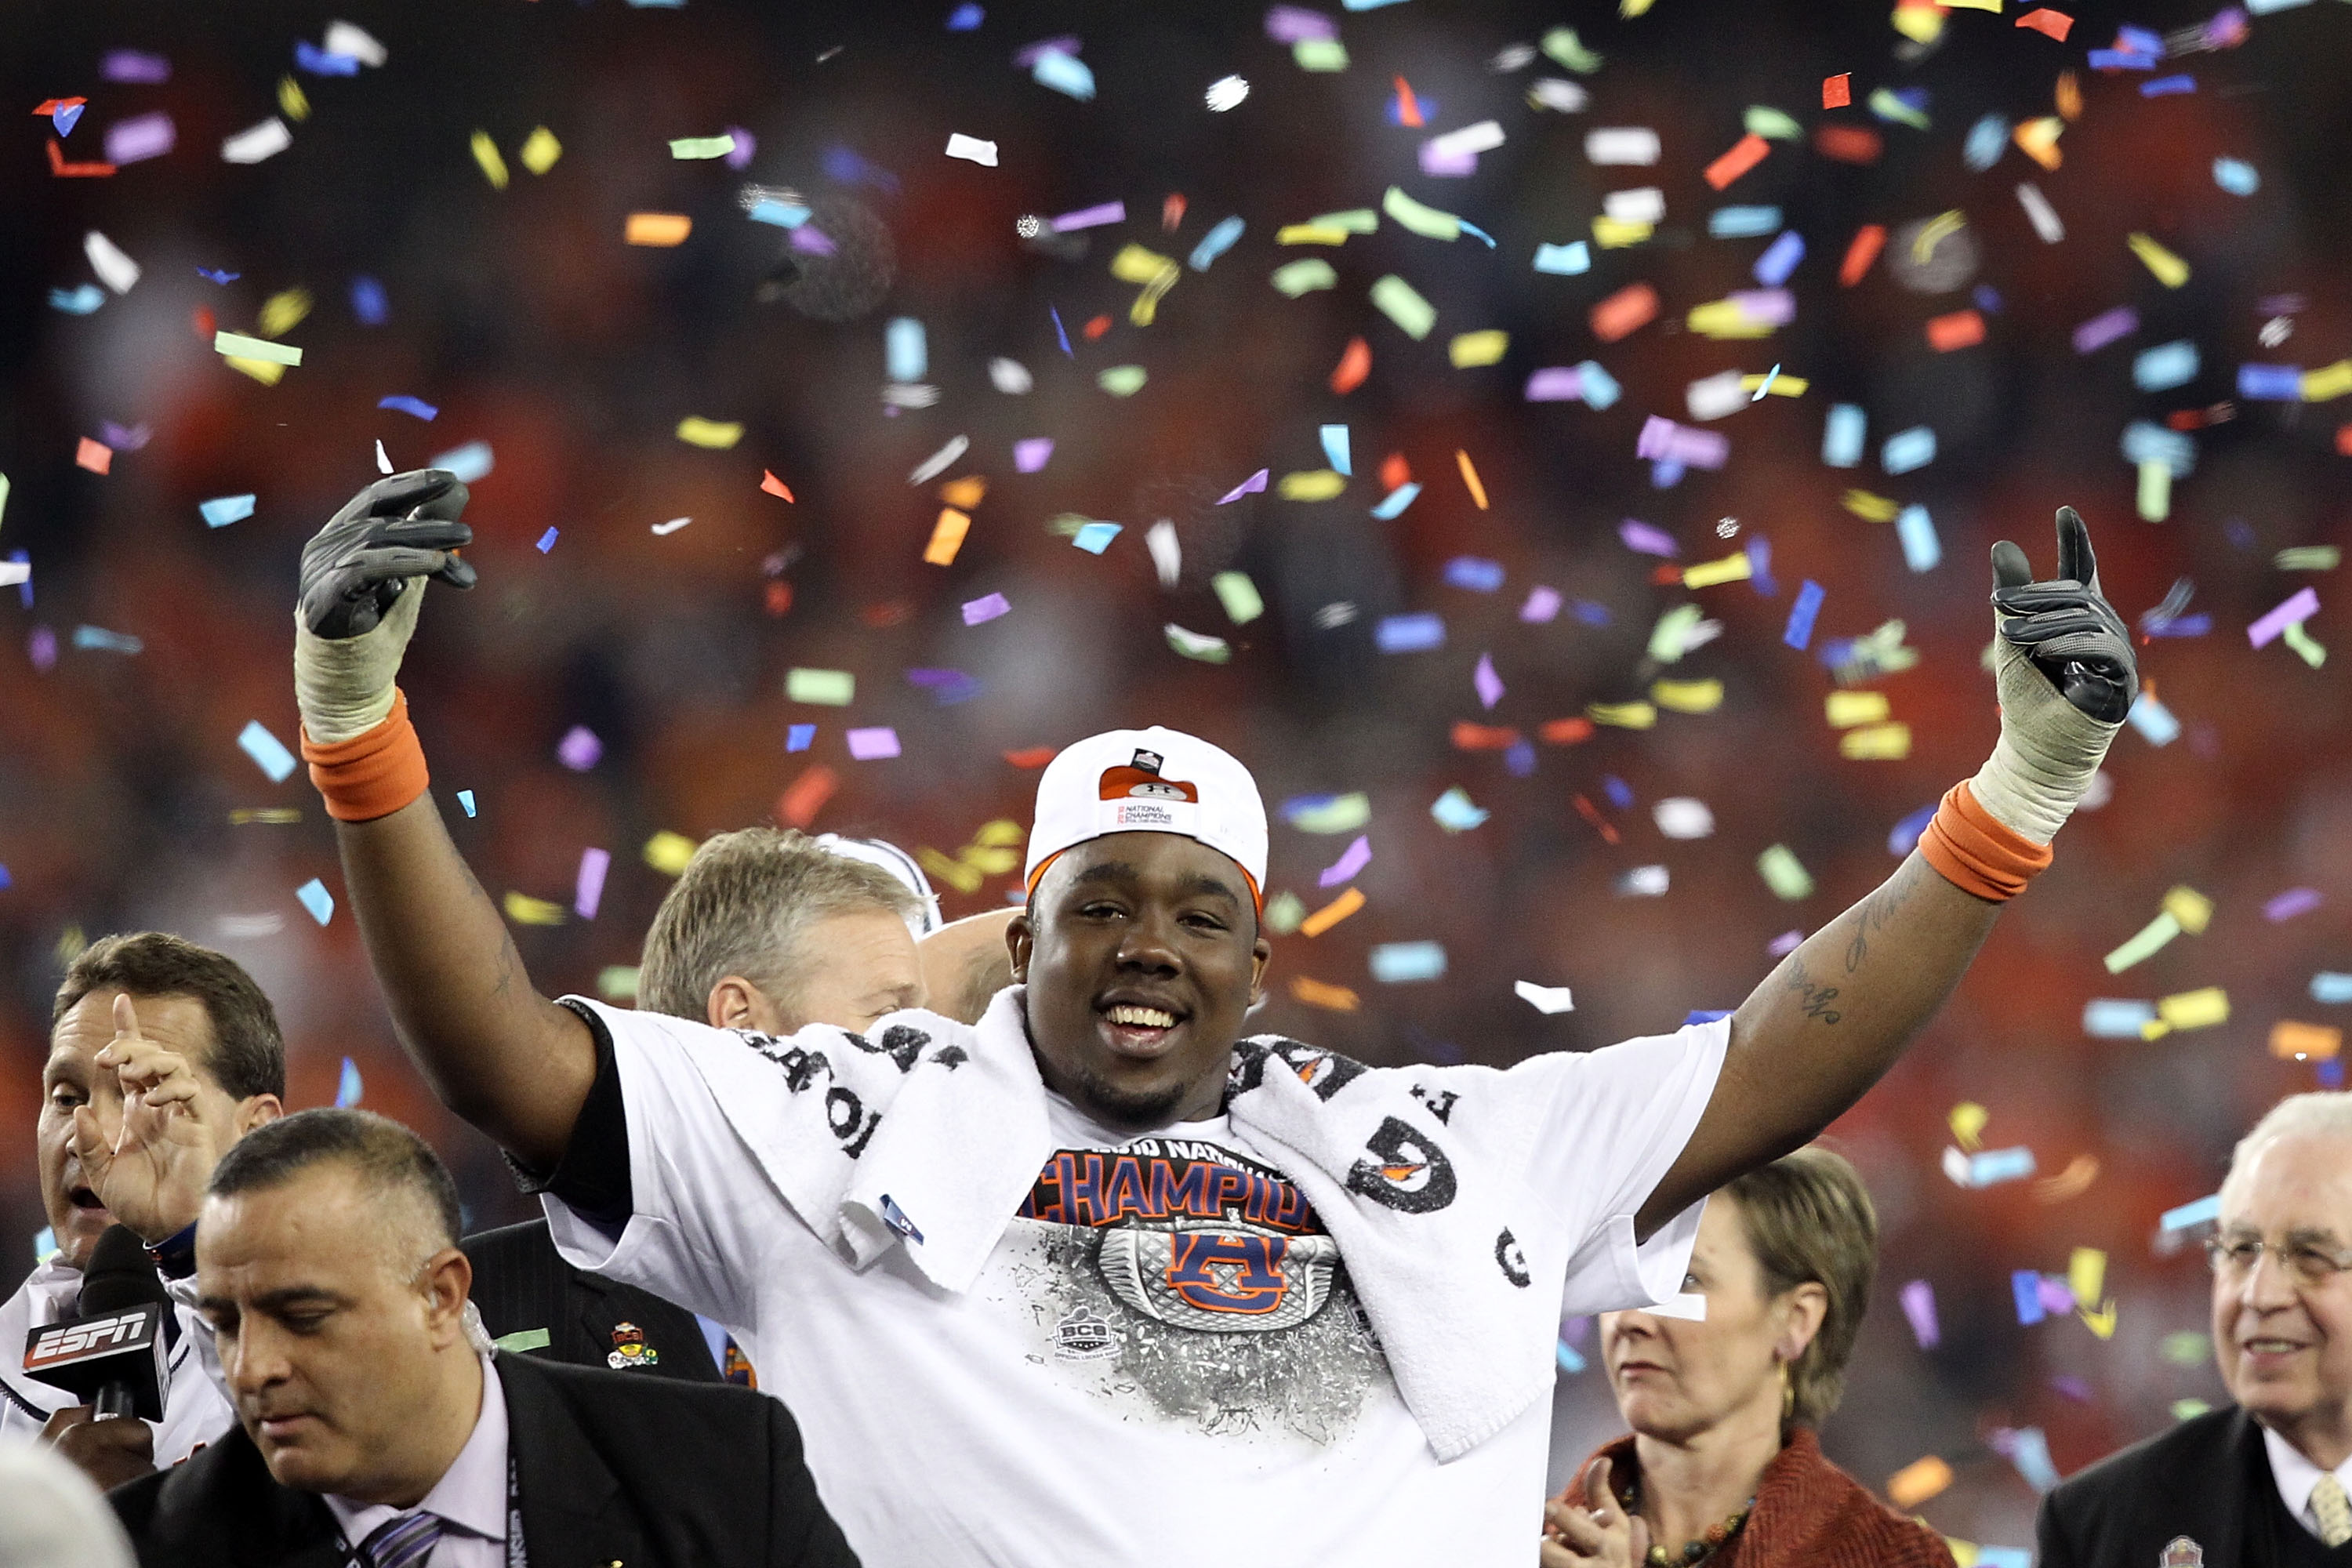 2011 NFL Mock Draft: Complete NFL Draft 1st and 2nd Round